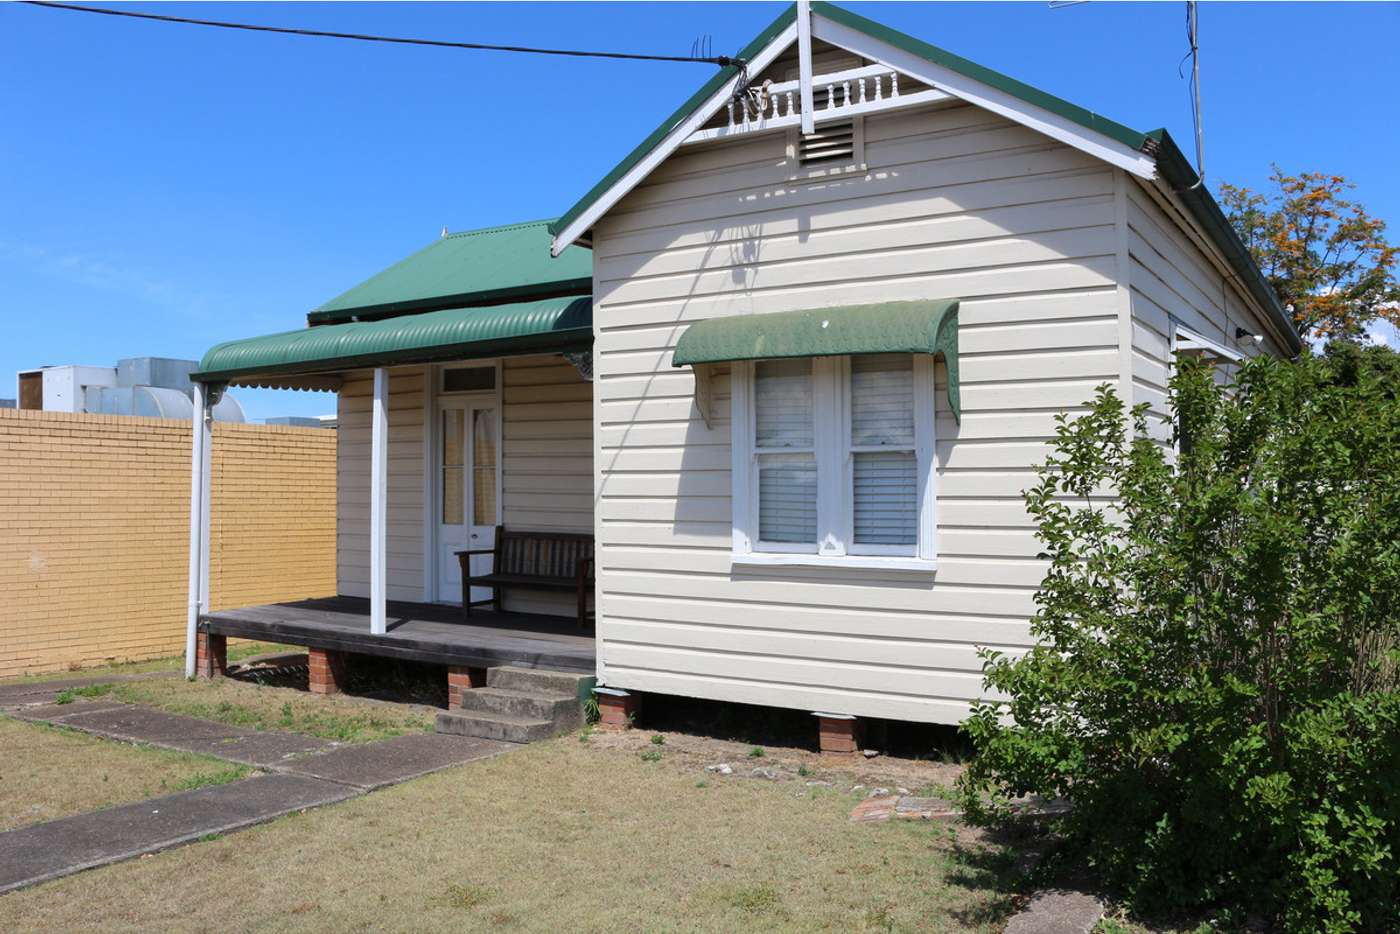 Main view of Homely house listing, 80 Combined Street, Wingham NSW 2429